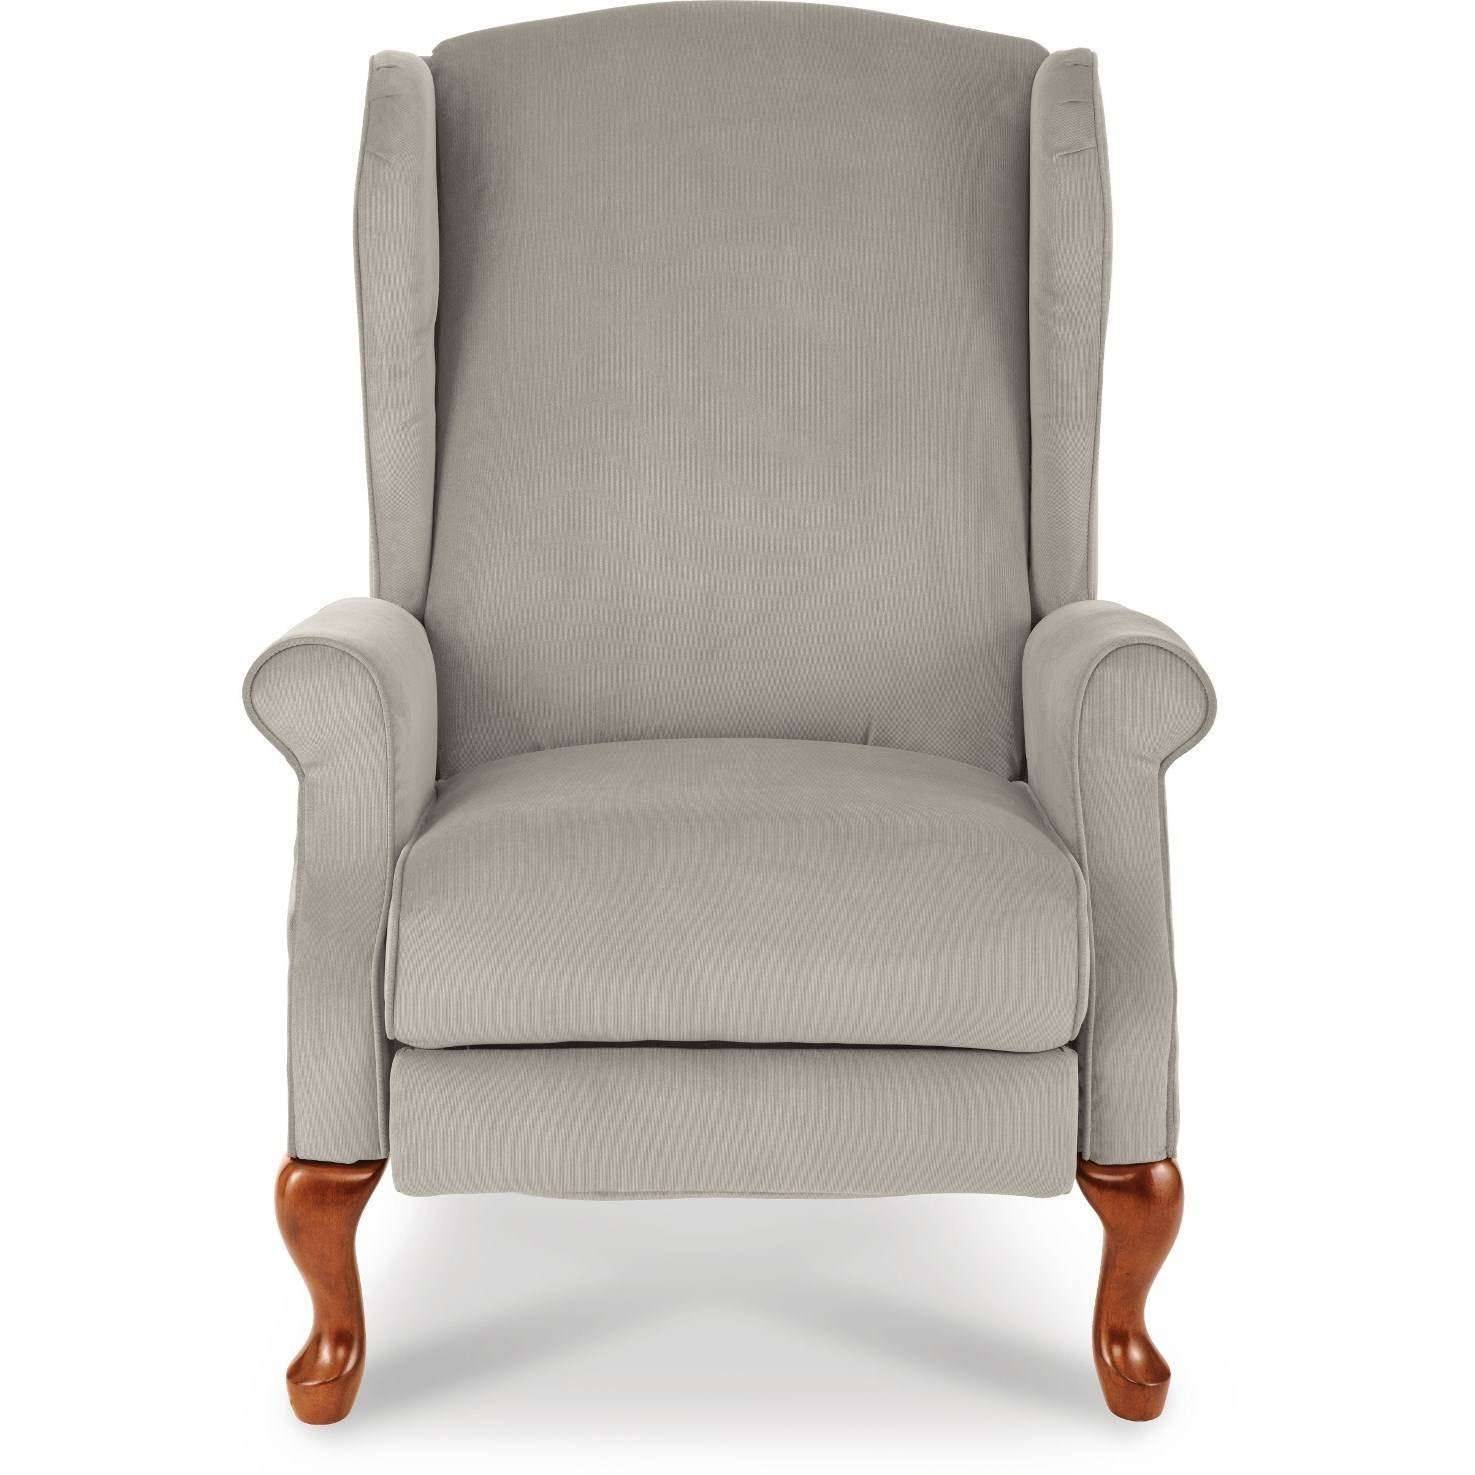 Recliners Kimberly Recliner by La-Z-Boy at Lindy's Furniture Company